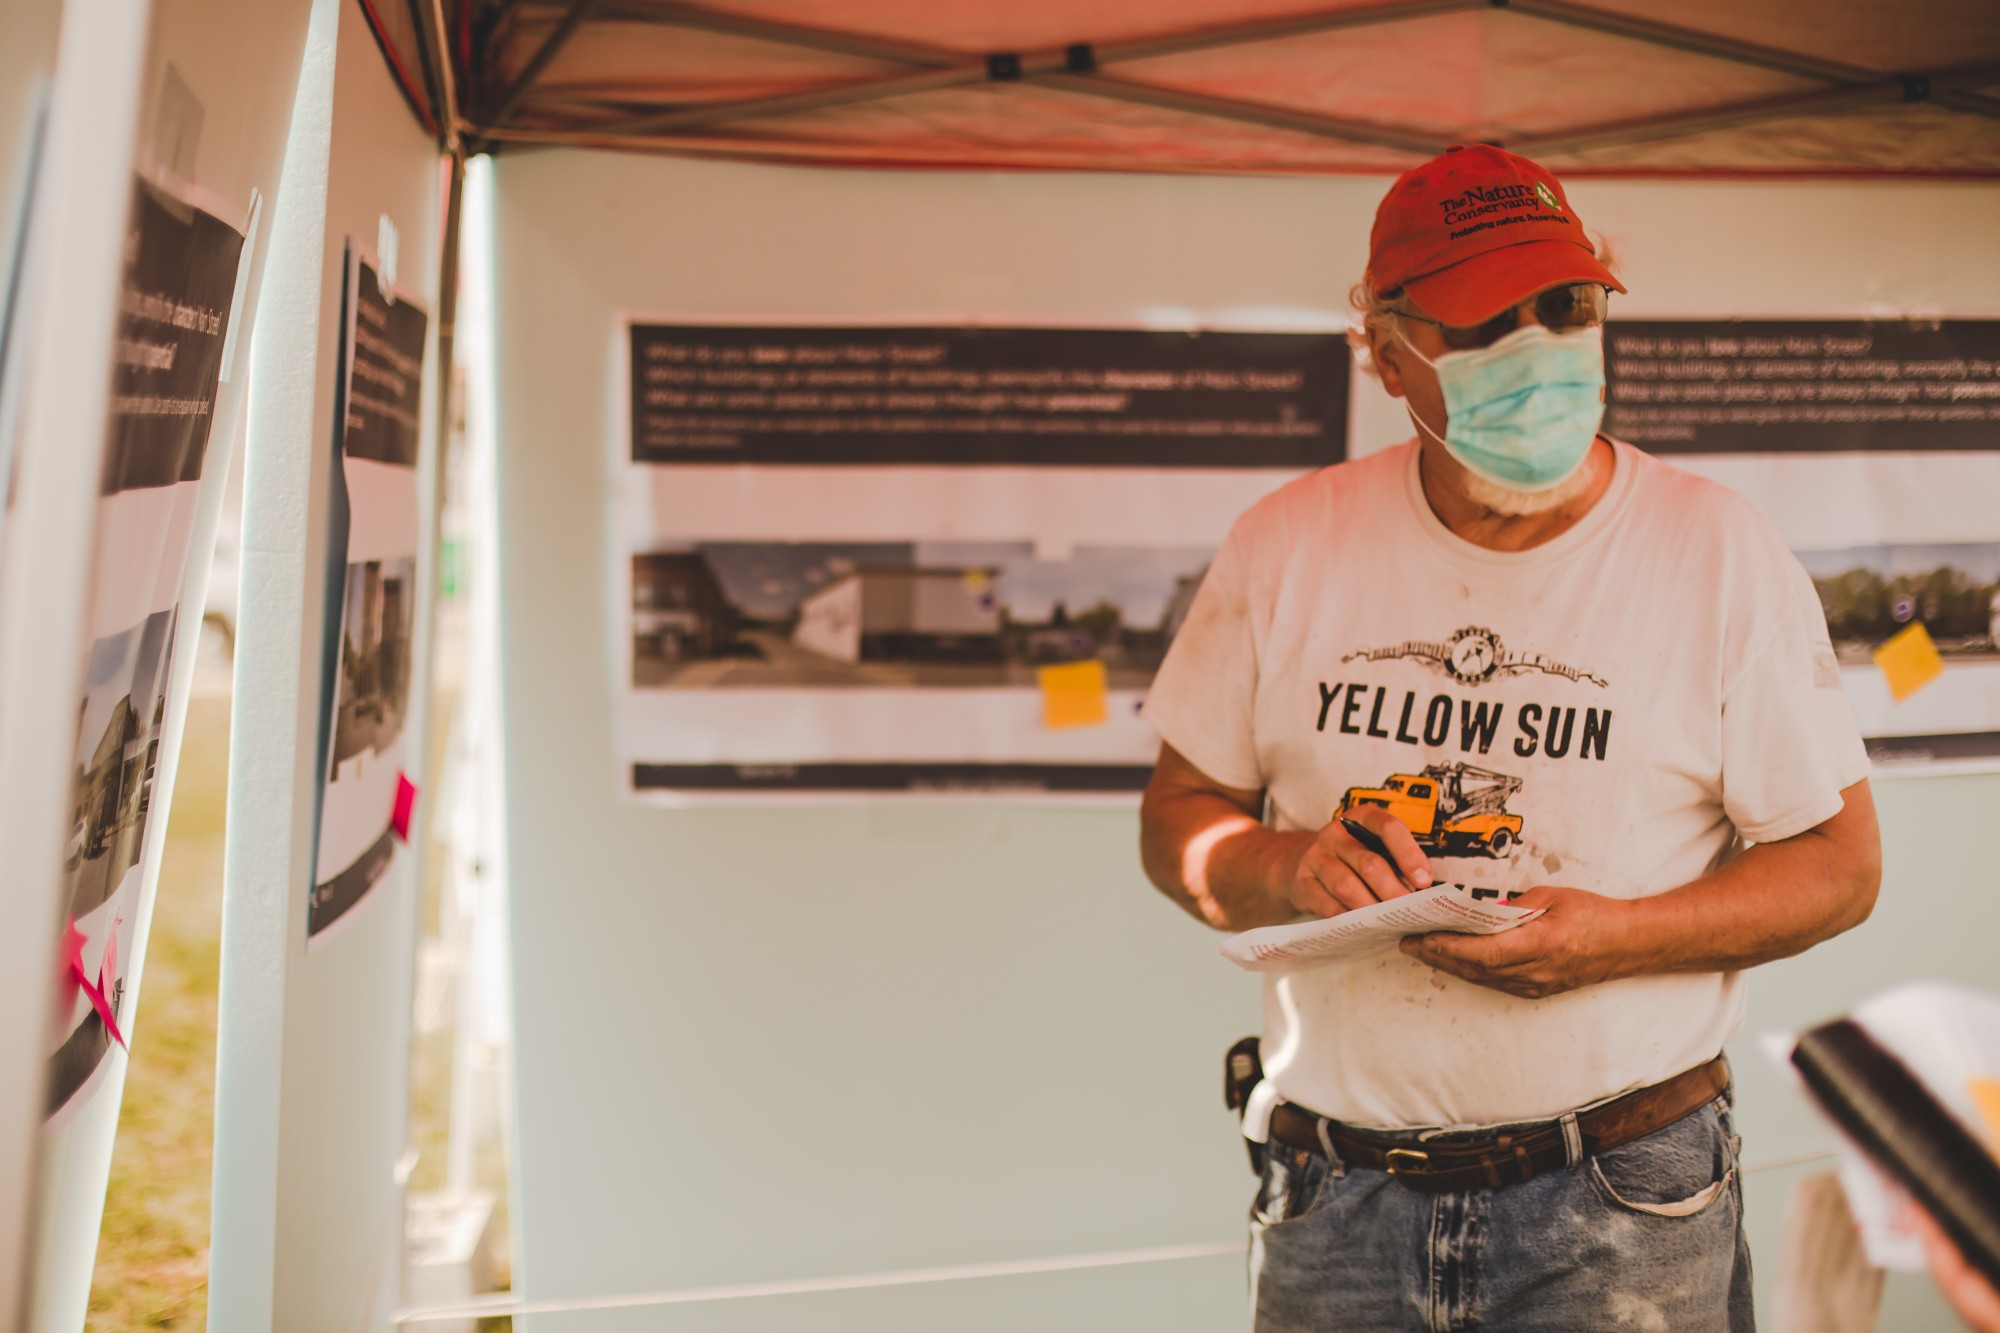 Millinocket resident engages with images of the downtown corridor PC: Malorrie Ann Photography